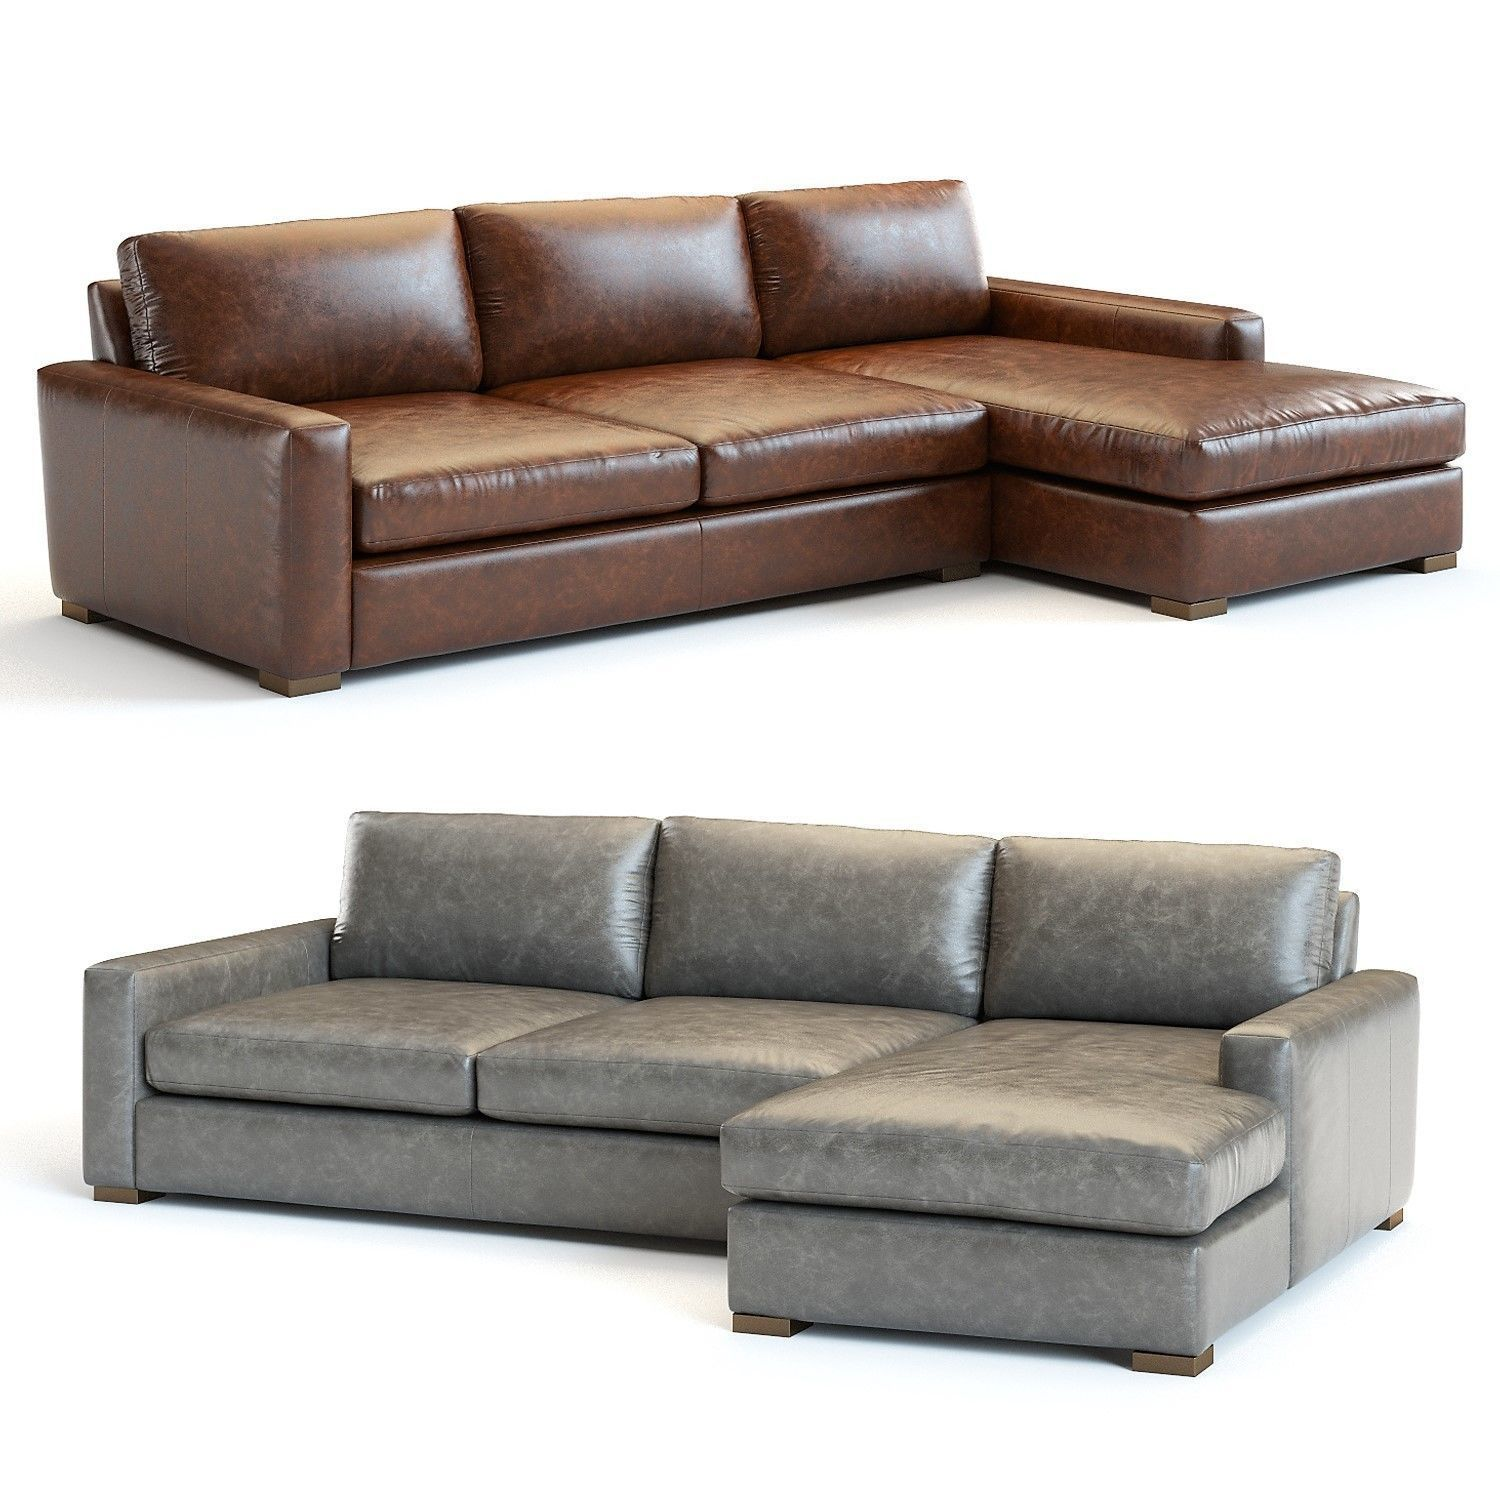 3D model Restoration Hardware - Maxwell Leather Sectional